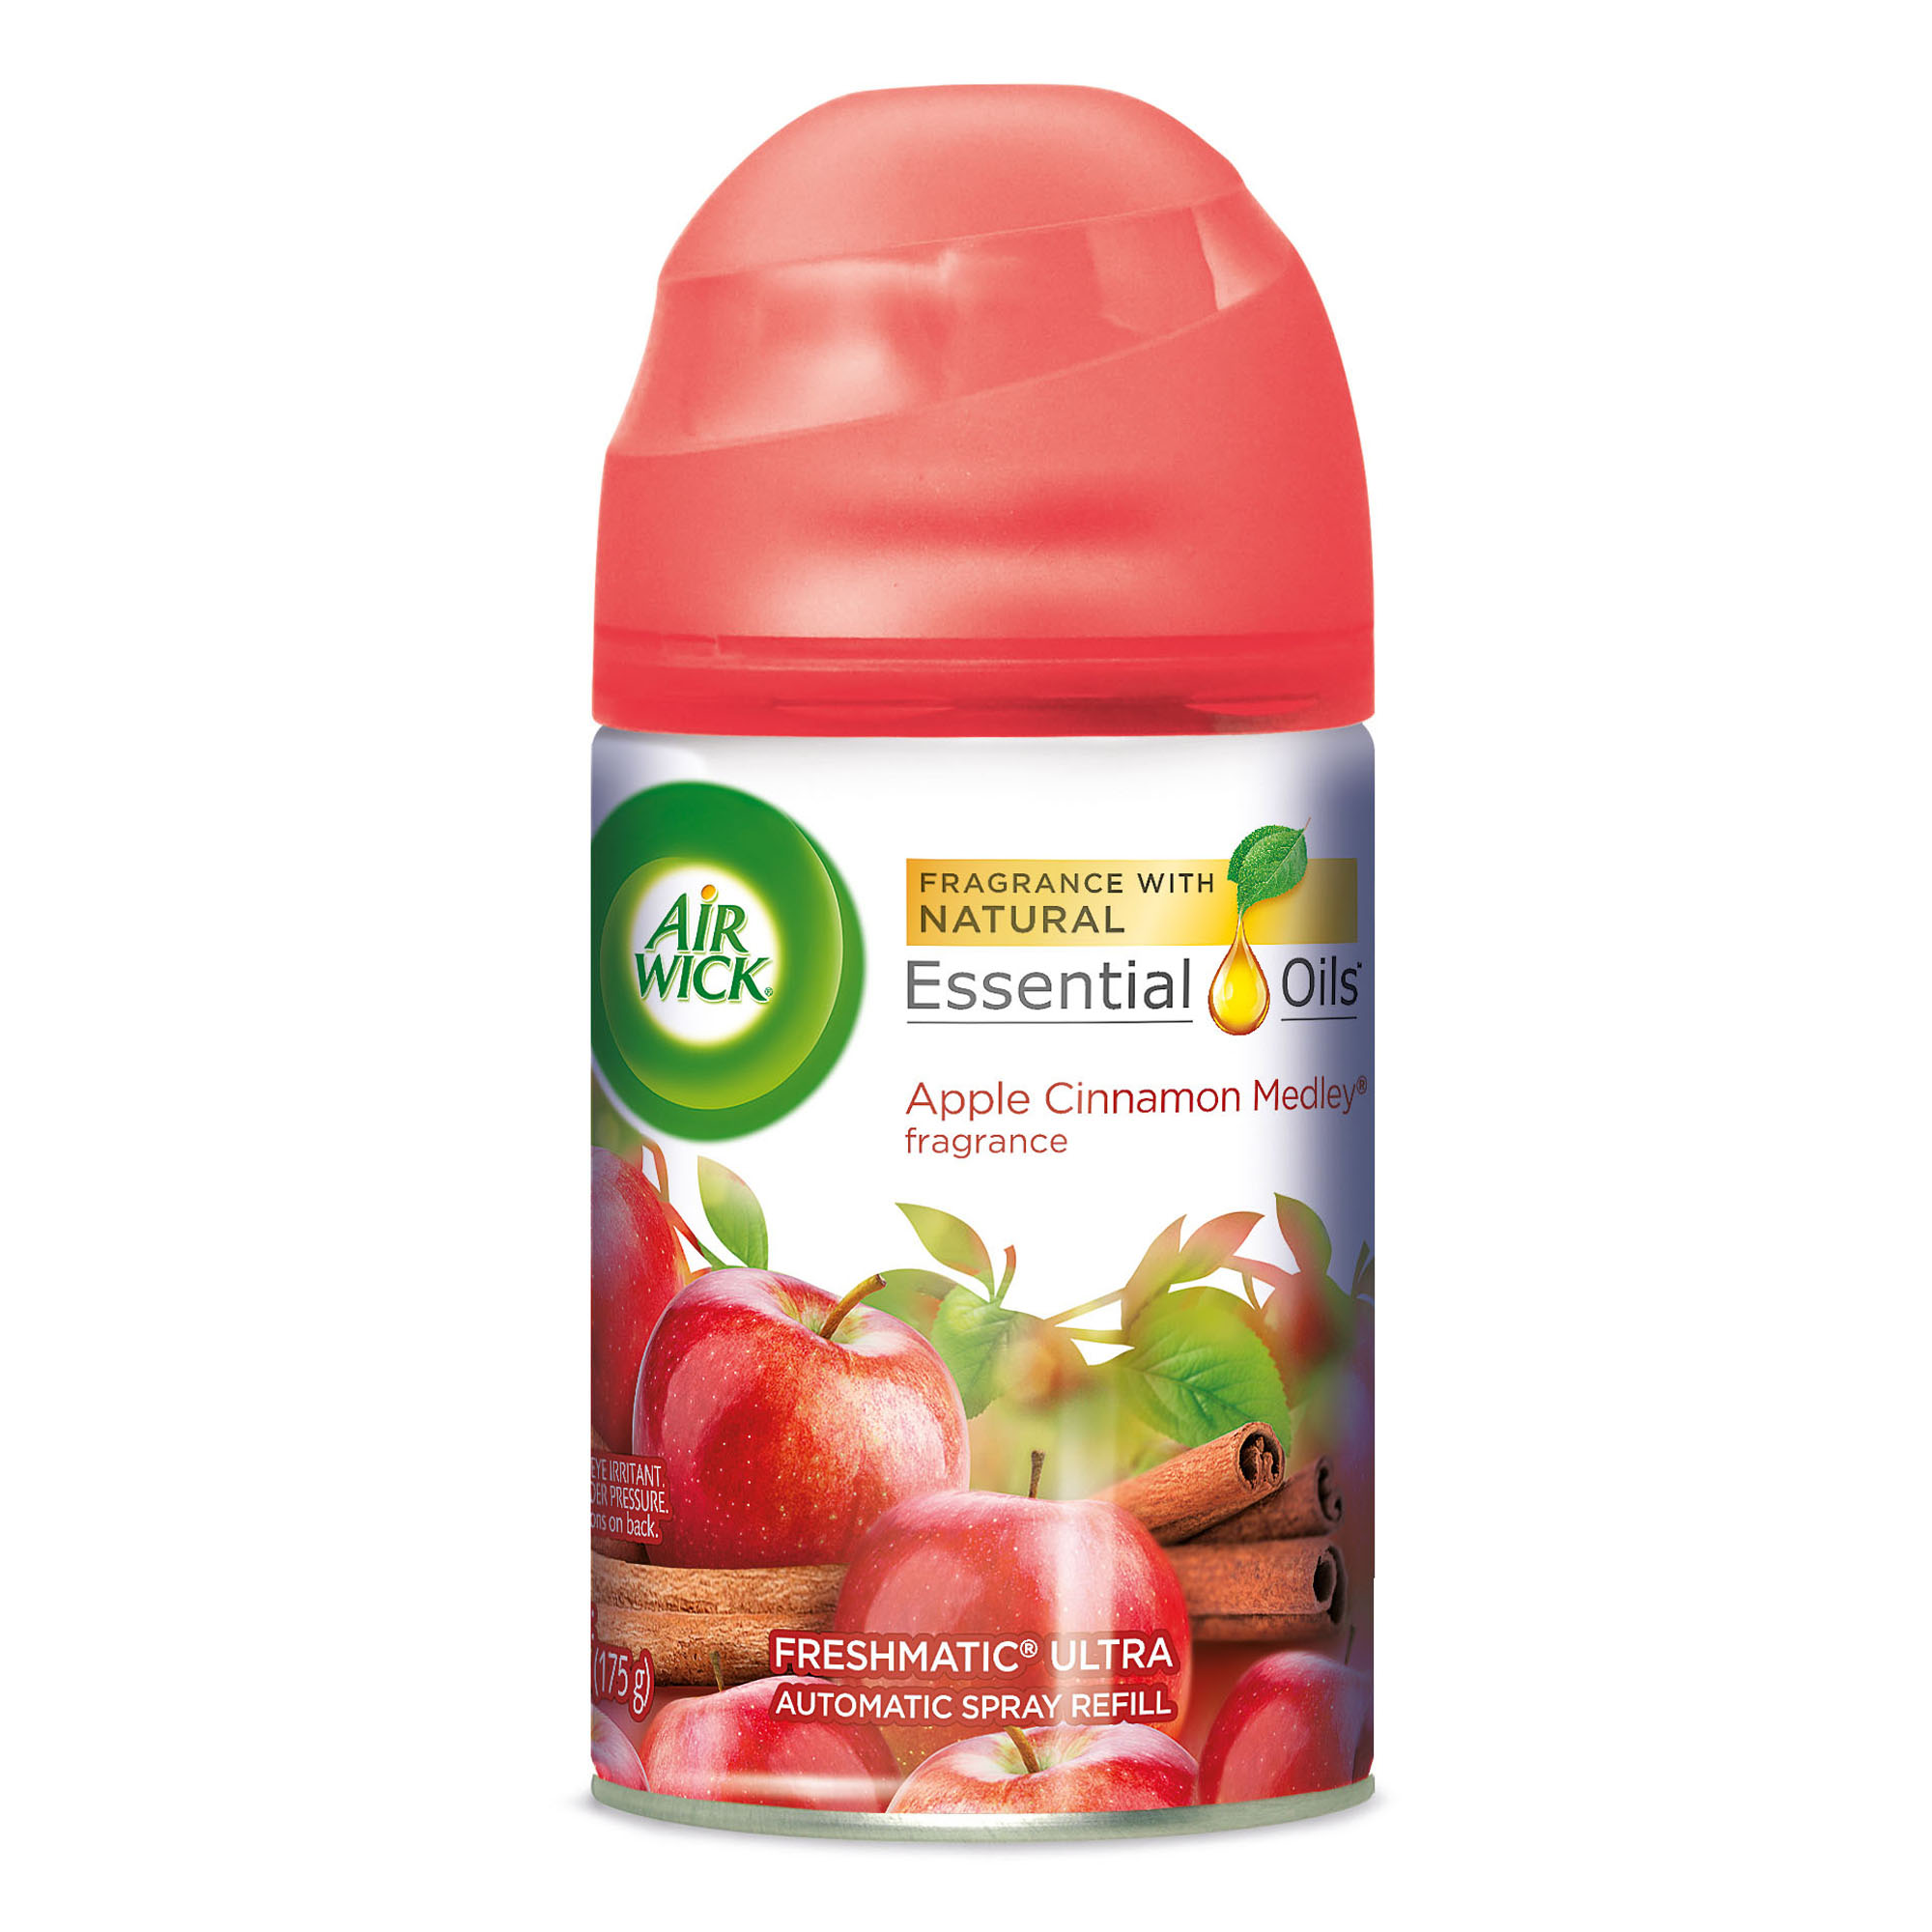 Air Wick Freshmatic Refill Automatic Spray, Apple Cinnamon Medley, 6.17oz, Air Freshener